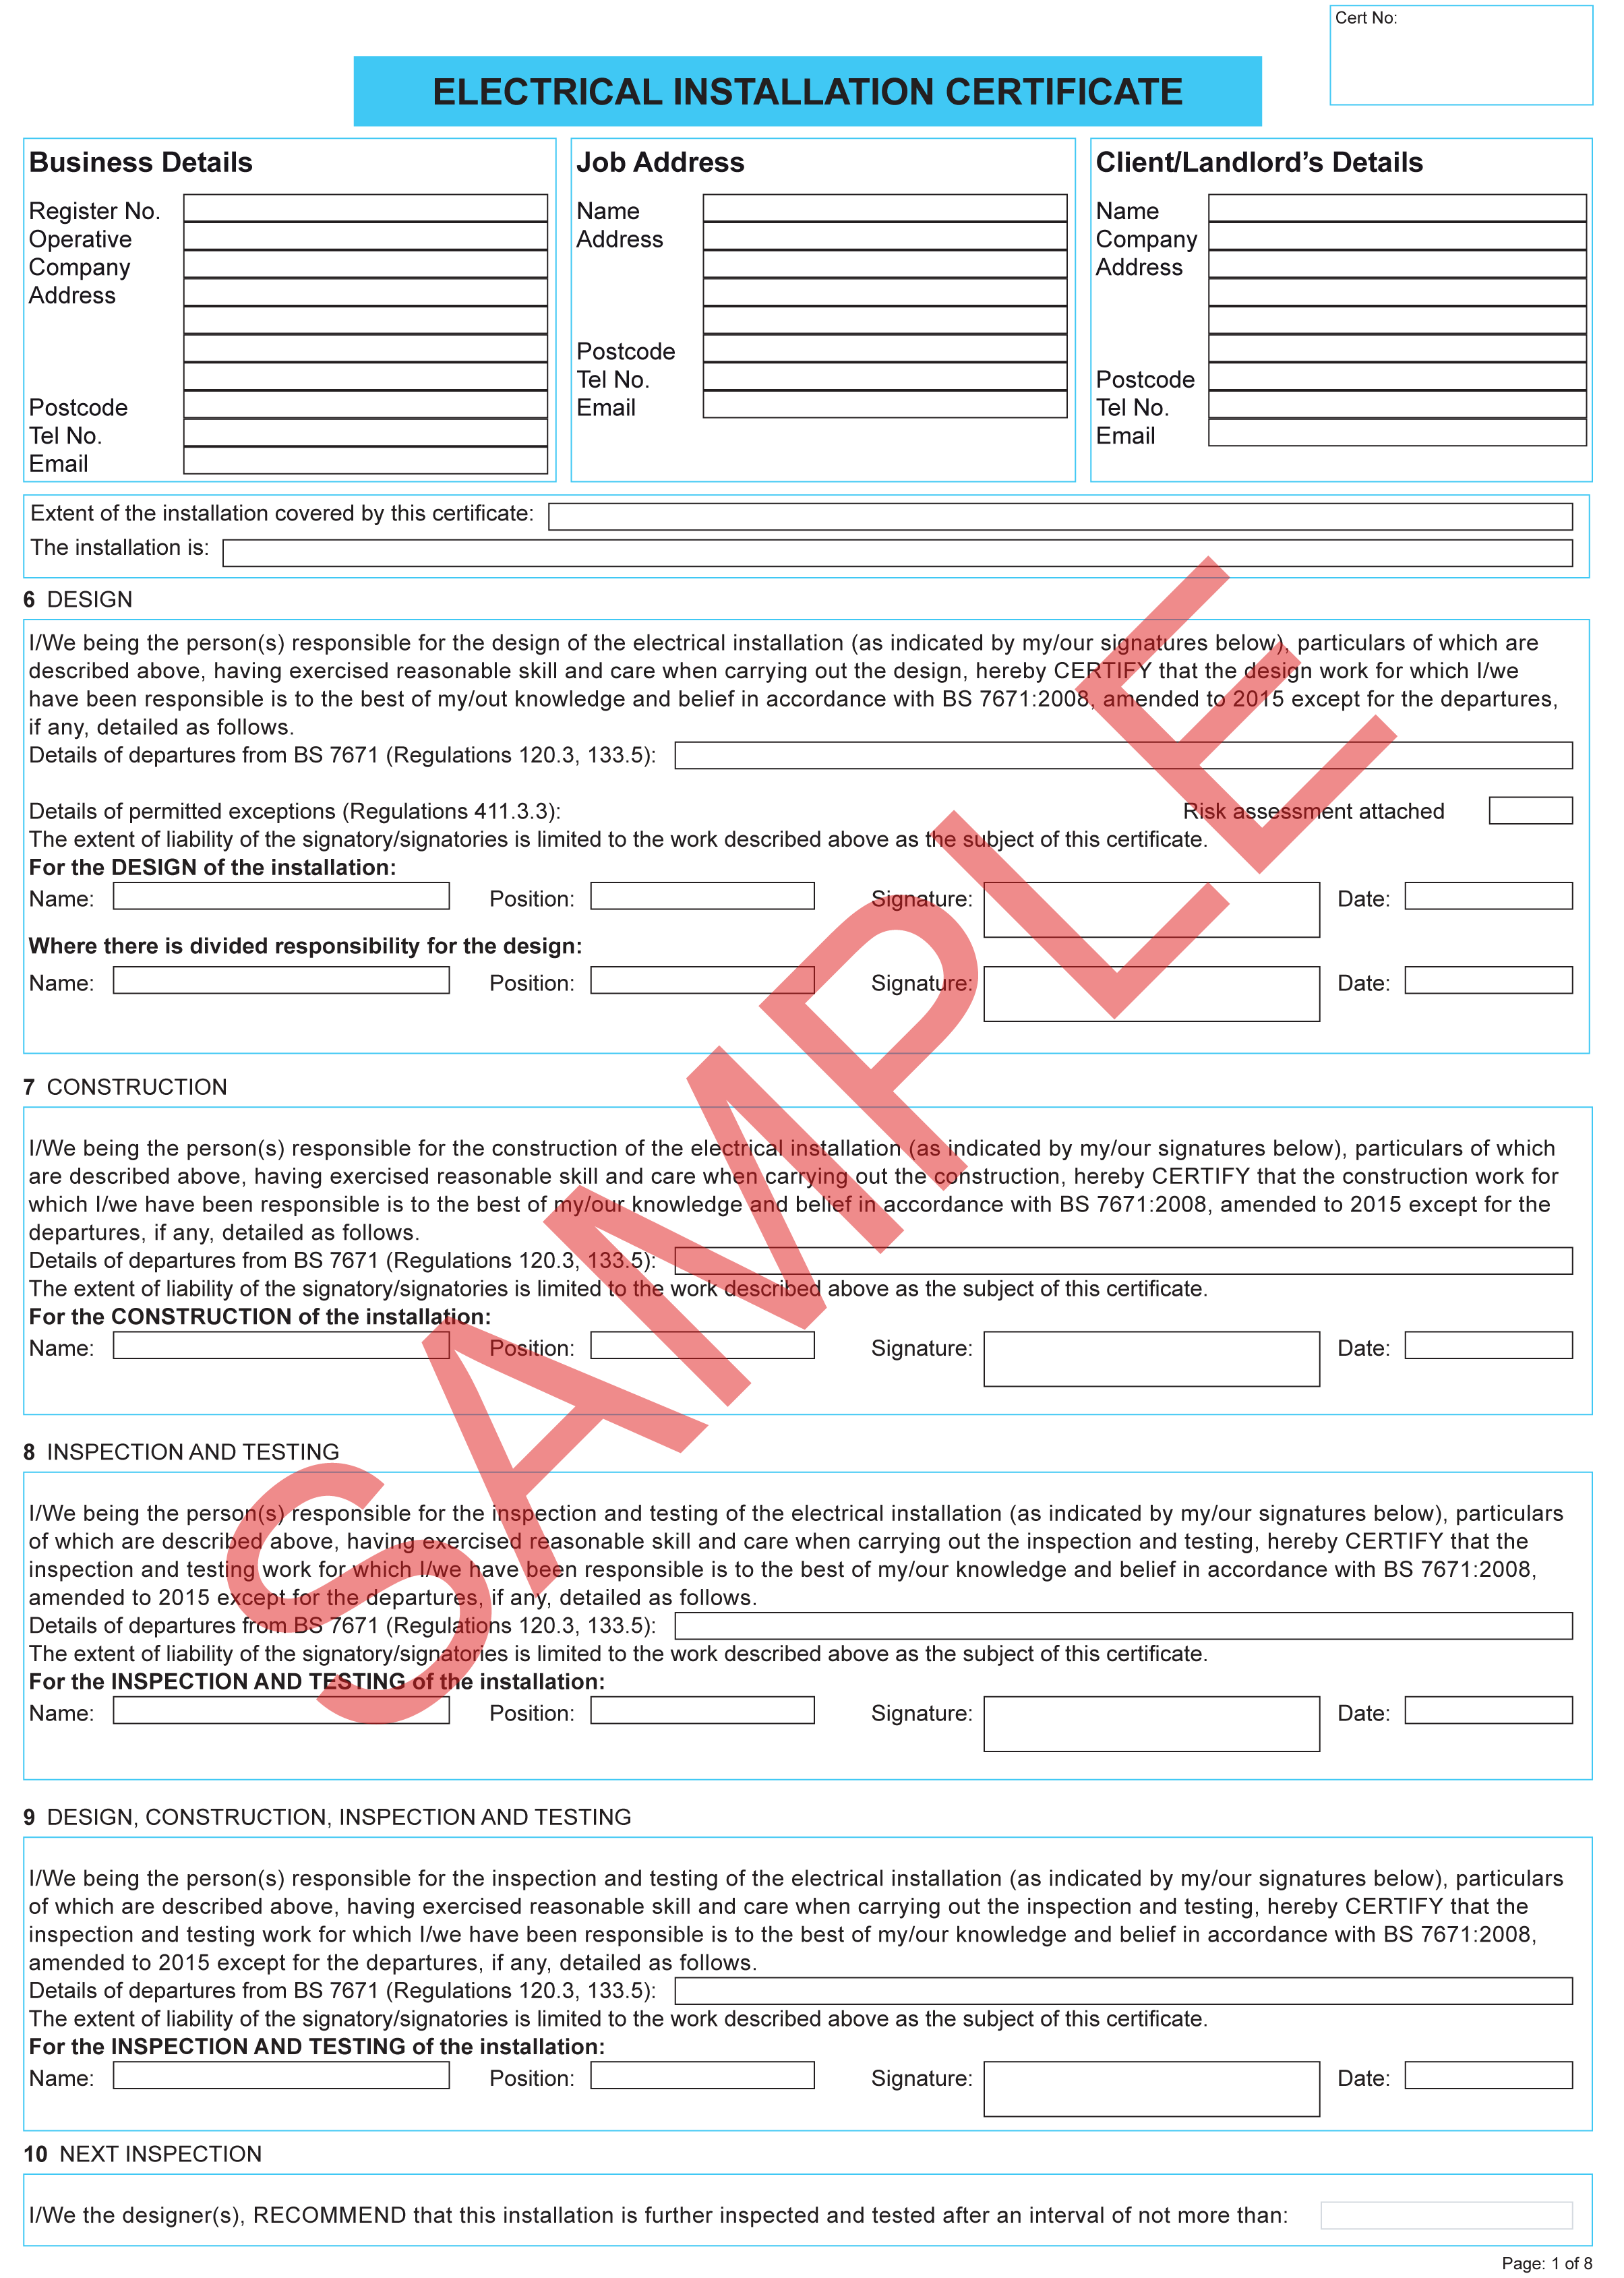 Electrical Installation Certificate Template